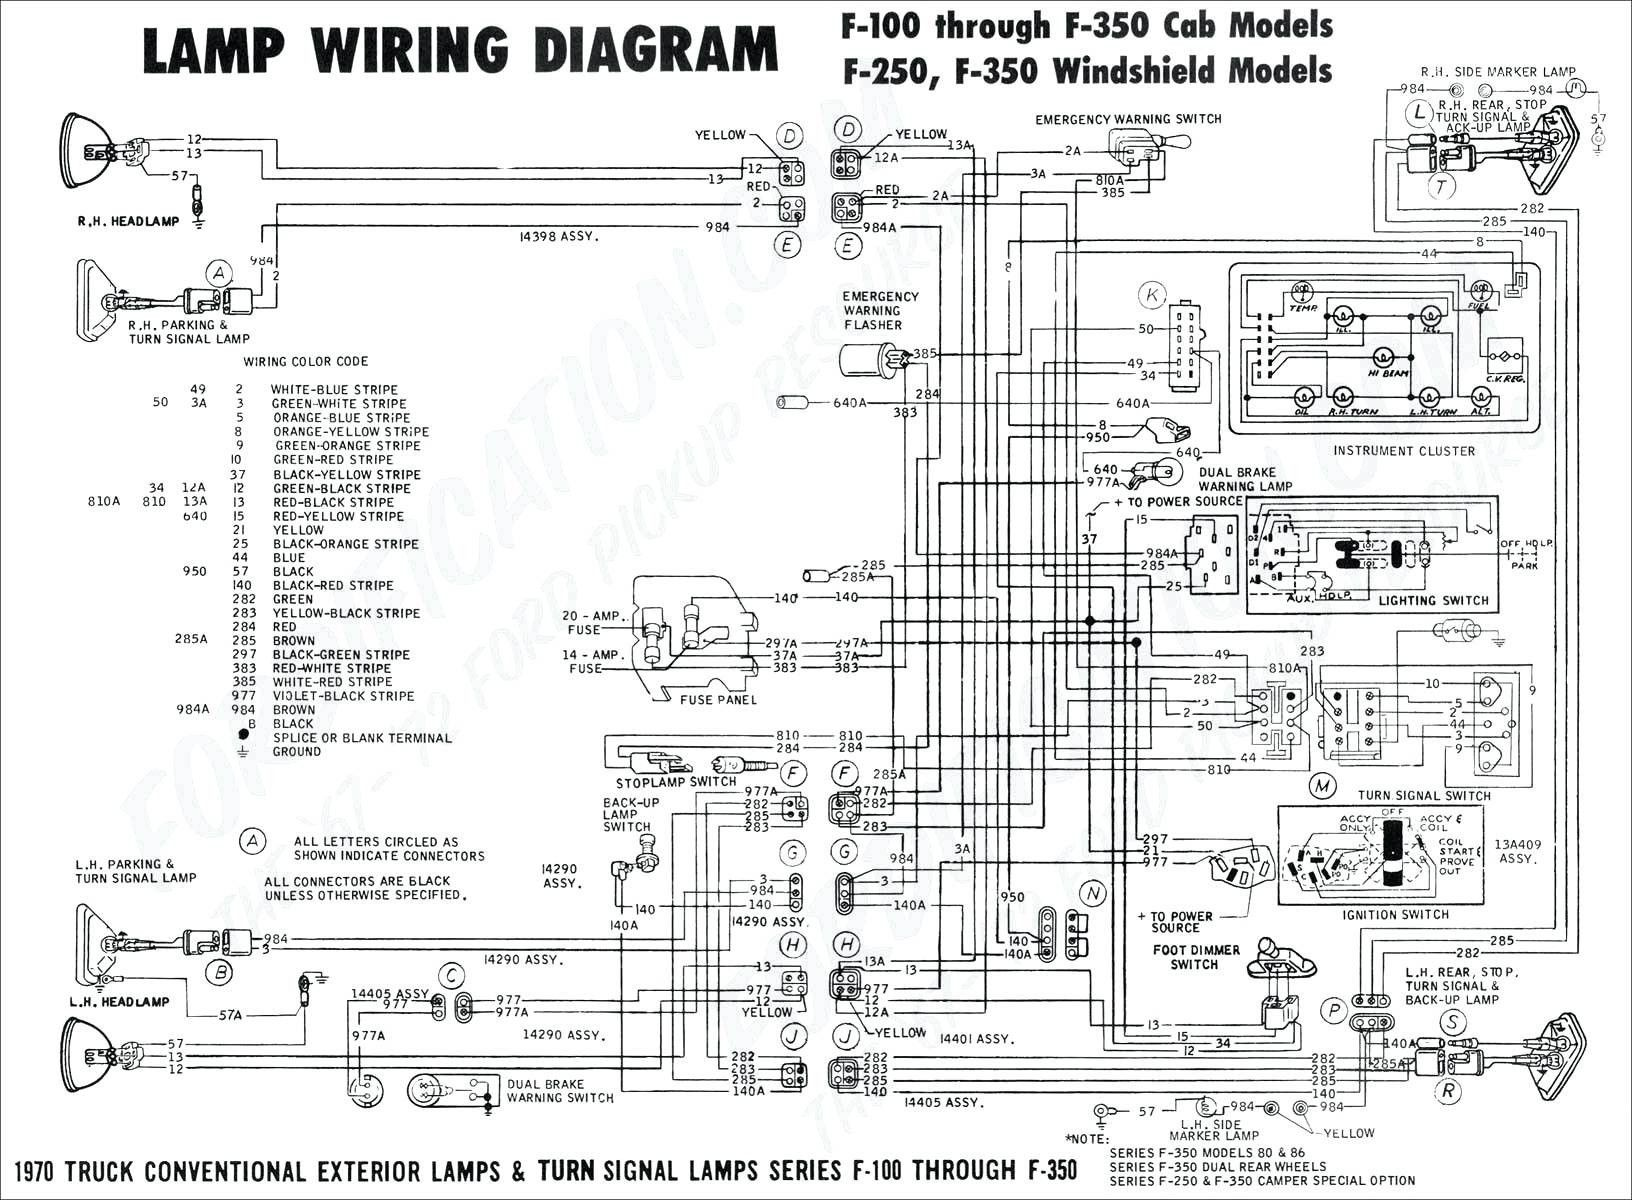 15 Good Wiring Diagrams For Dummies Technique Electrical Diagram Electrical Wiring Diagram Trailer Wiring Diagram